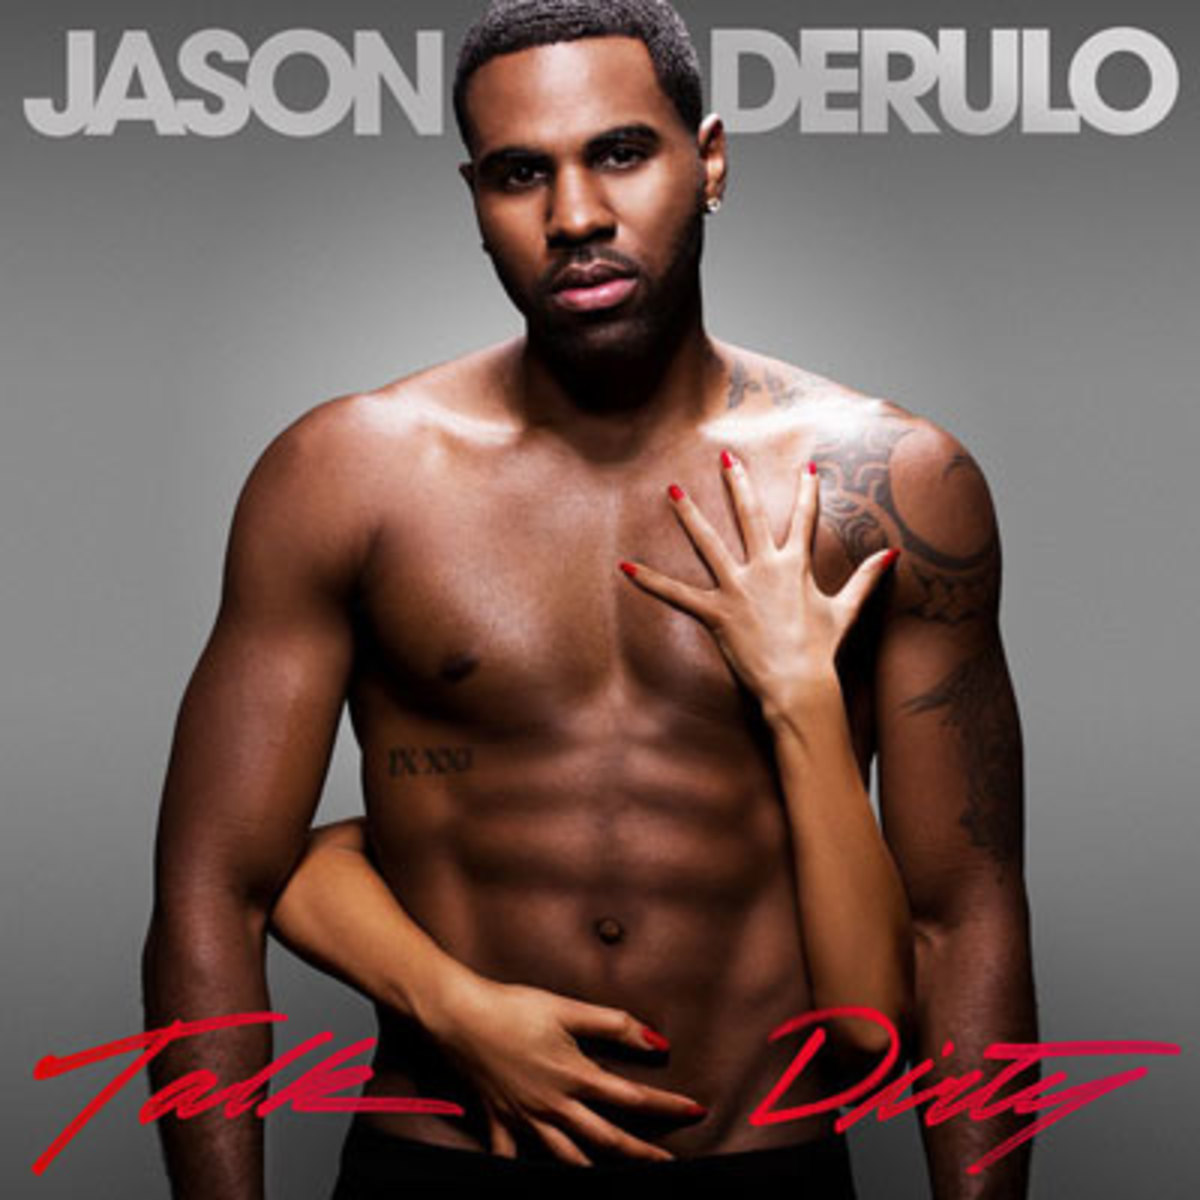 jasonderulo-talkdirty.jpg